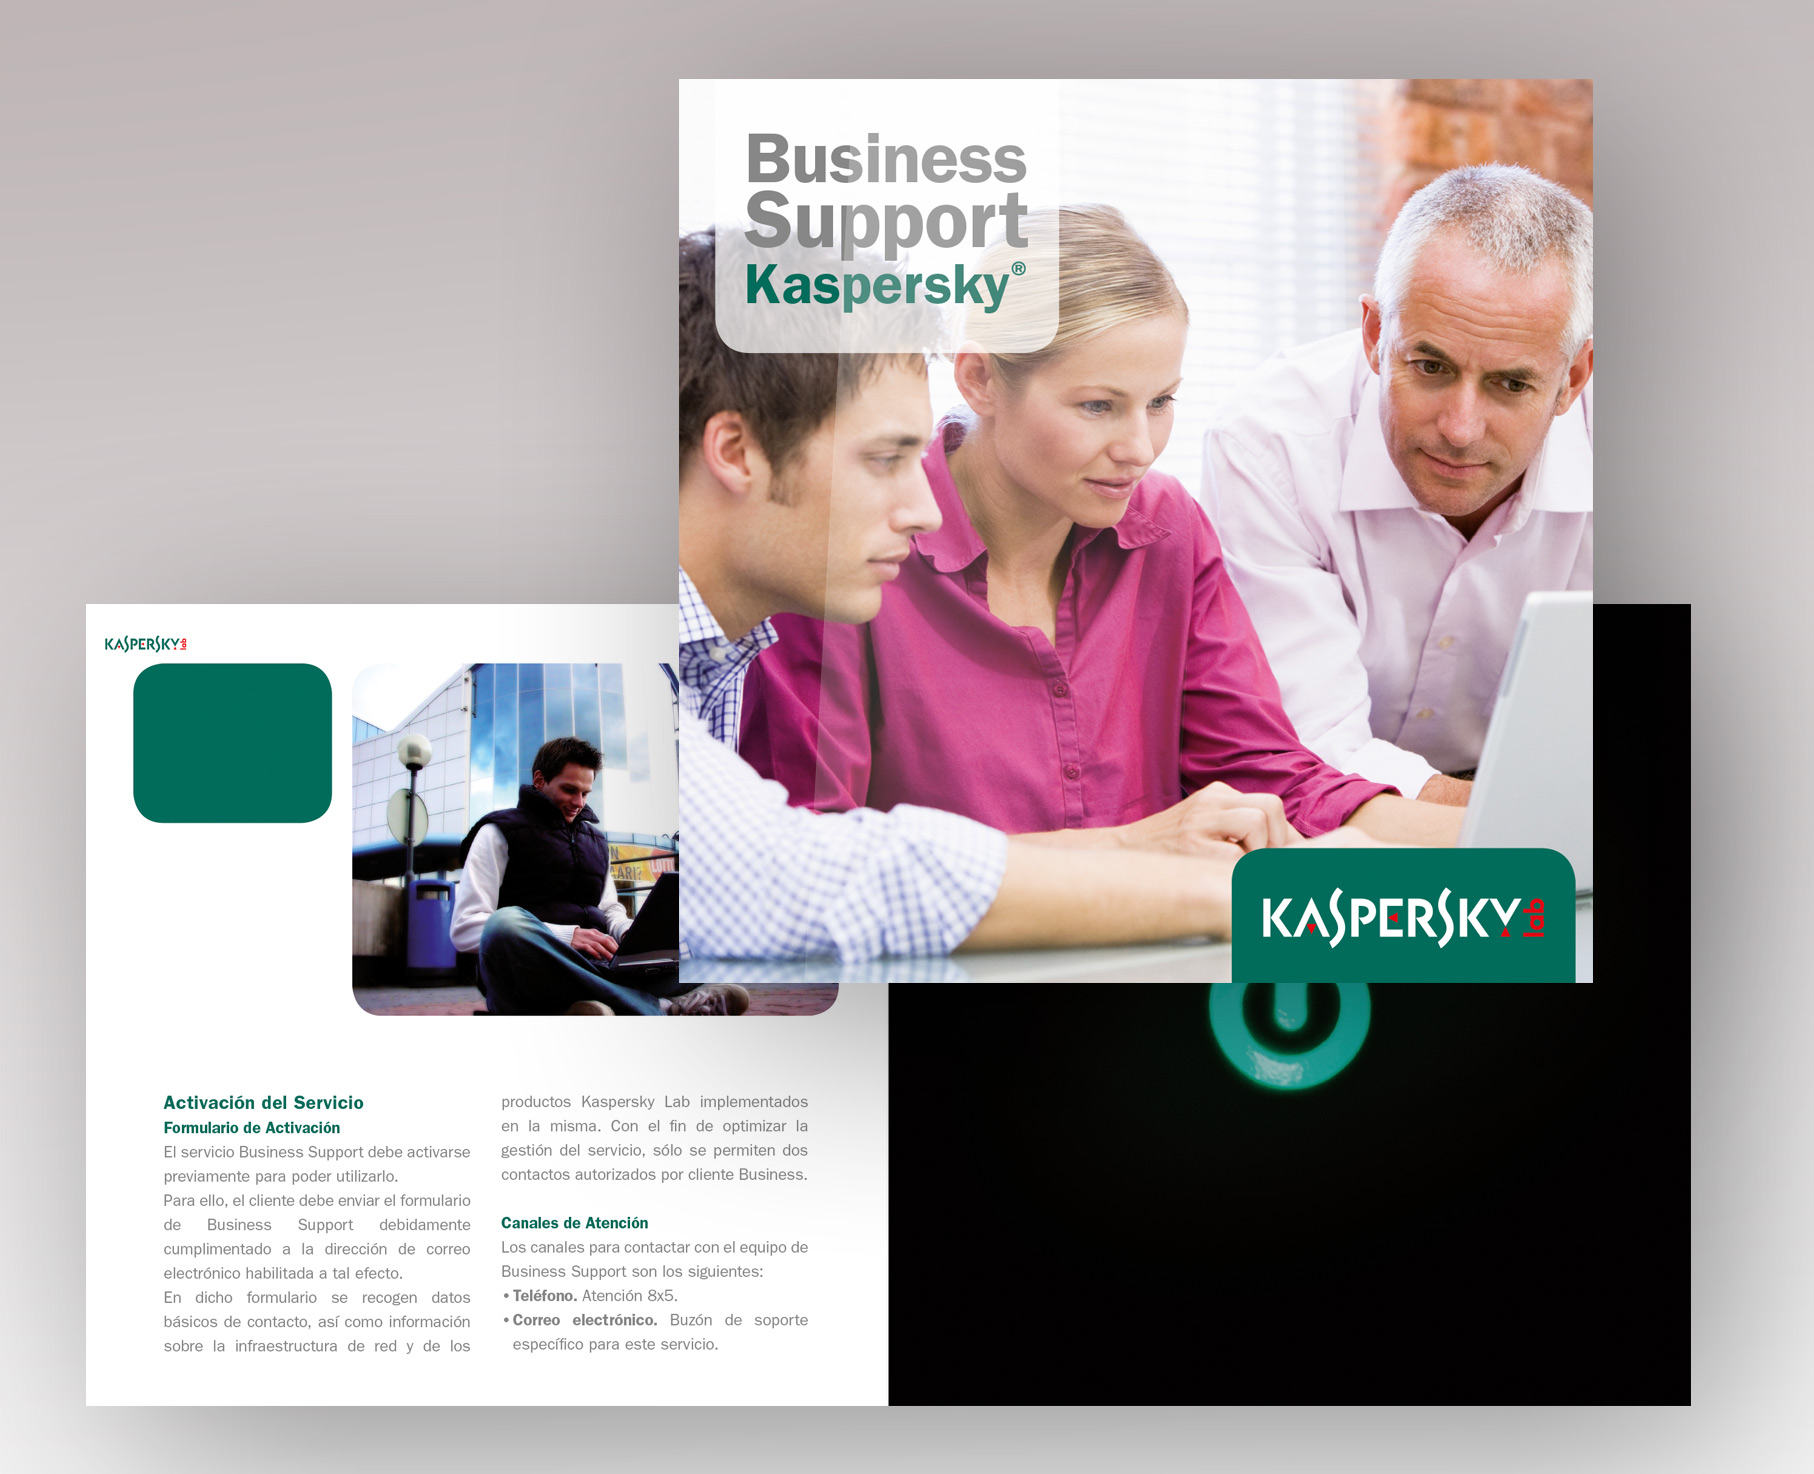 folleto-kaspersky